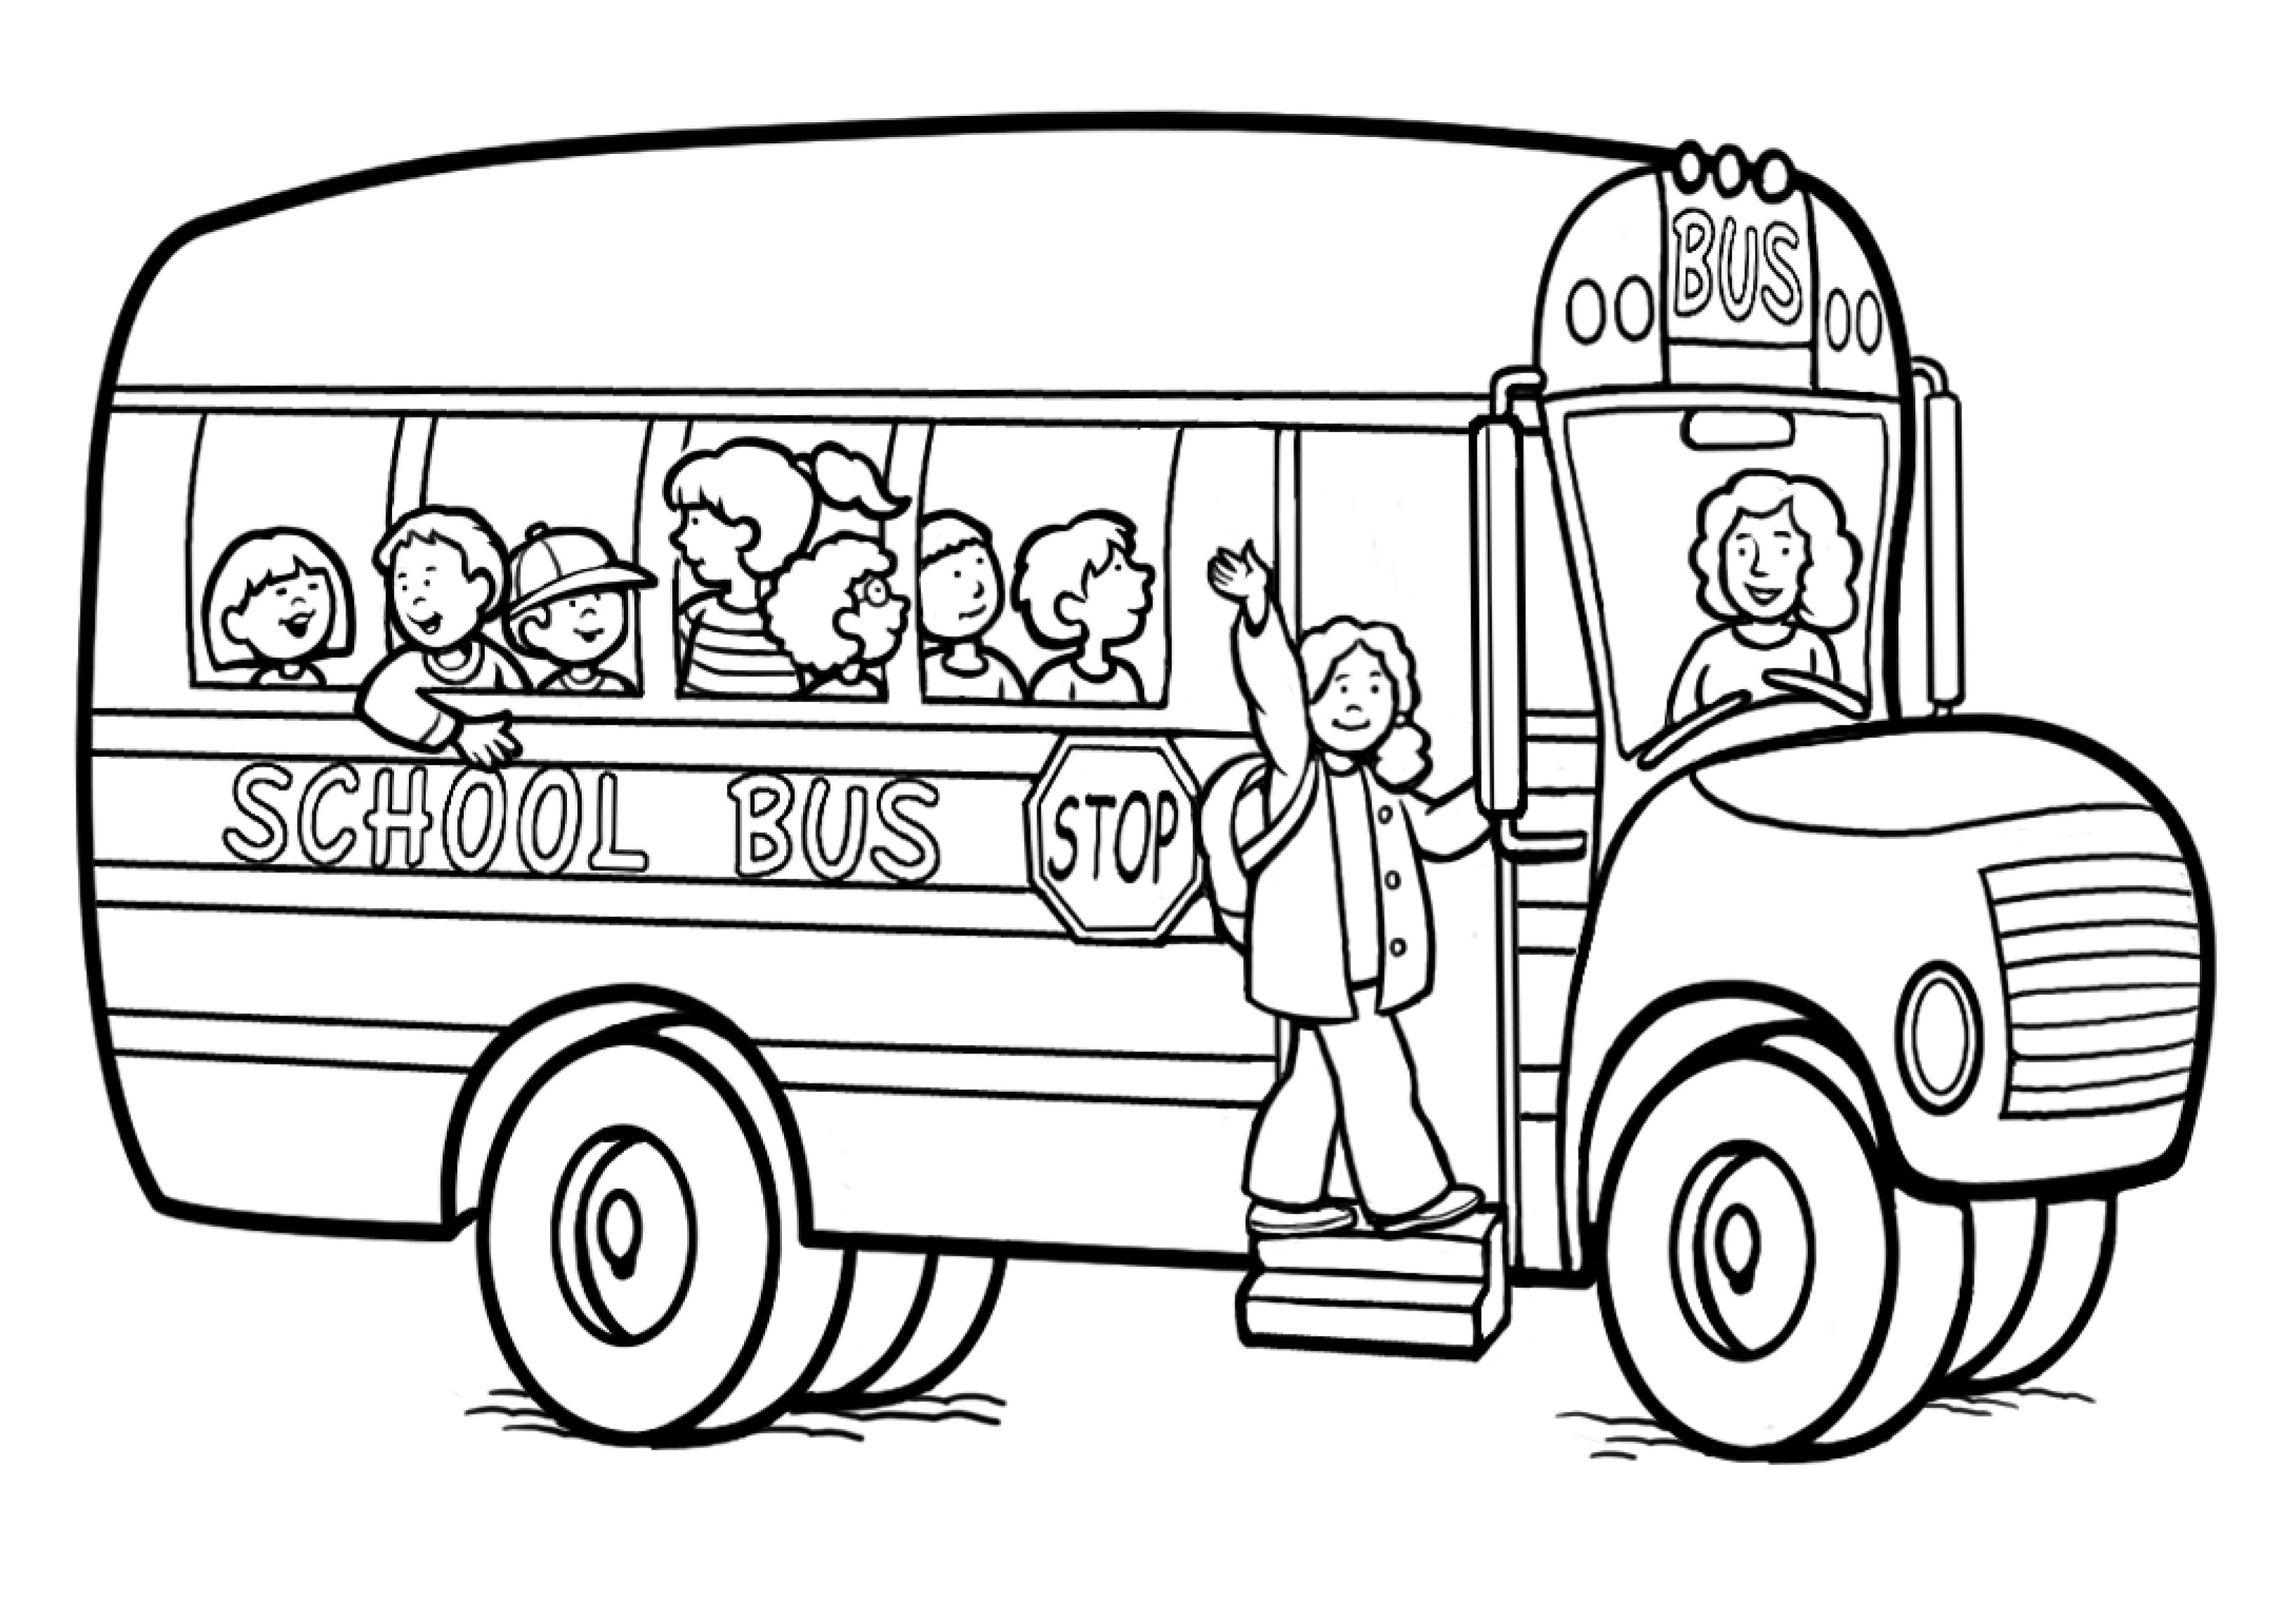 school bus coloring page - Coloring Pages School